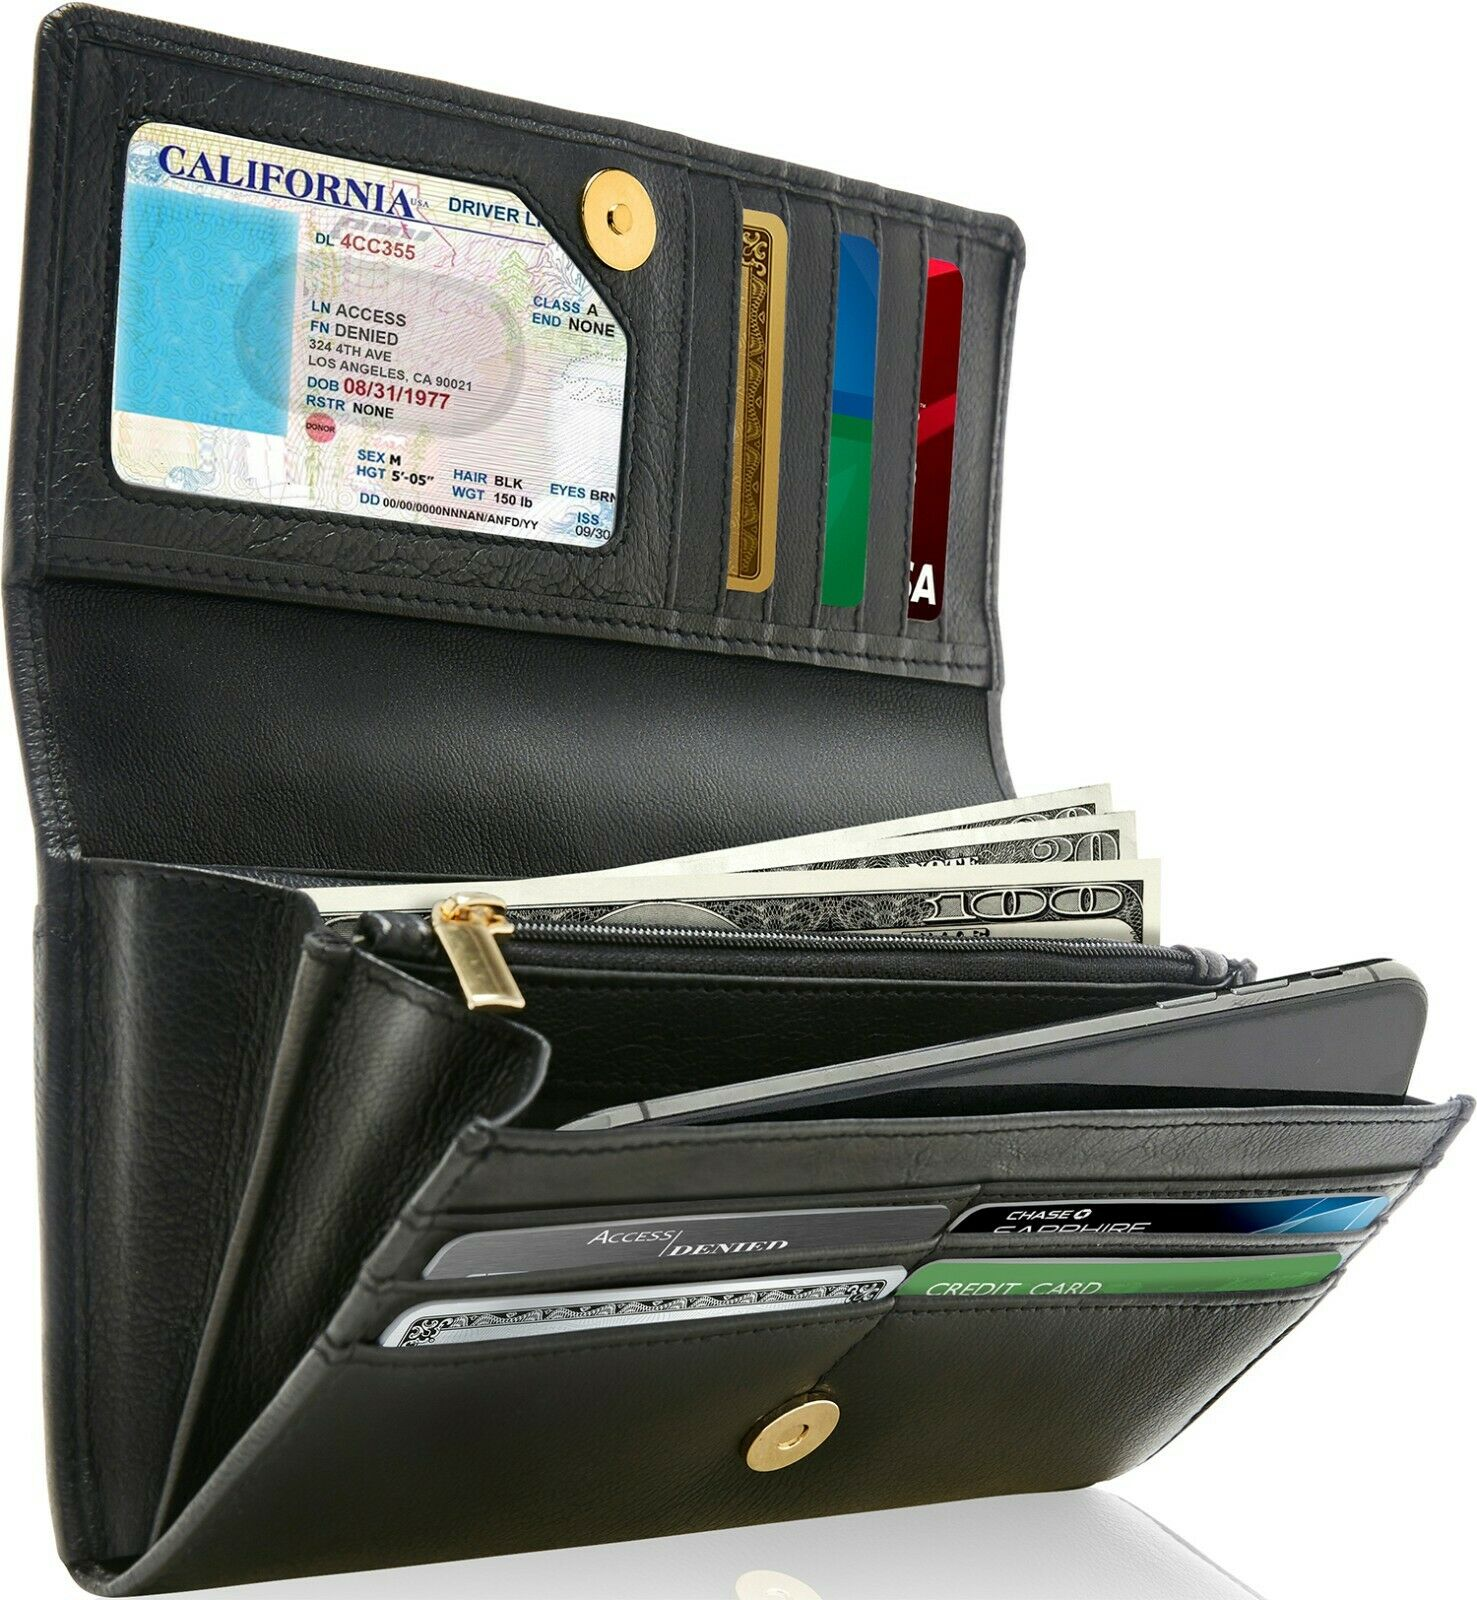 Genuine Leather Wallets For Women's Ladies Wallet Clutch Acc